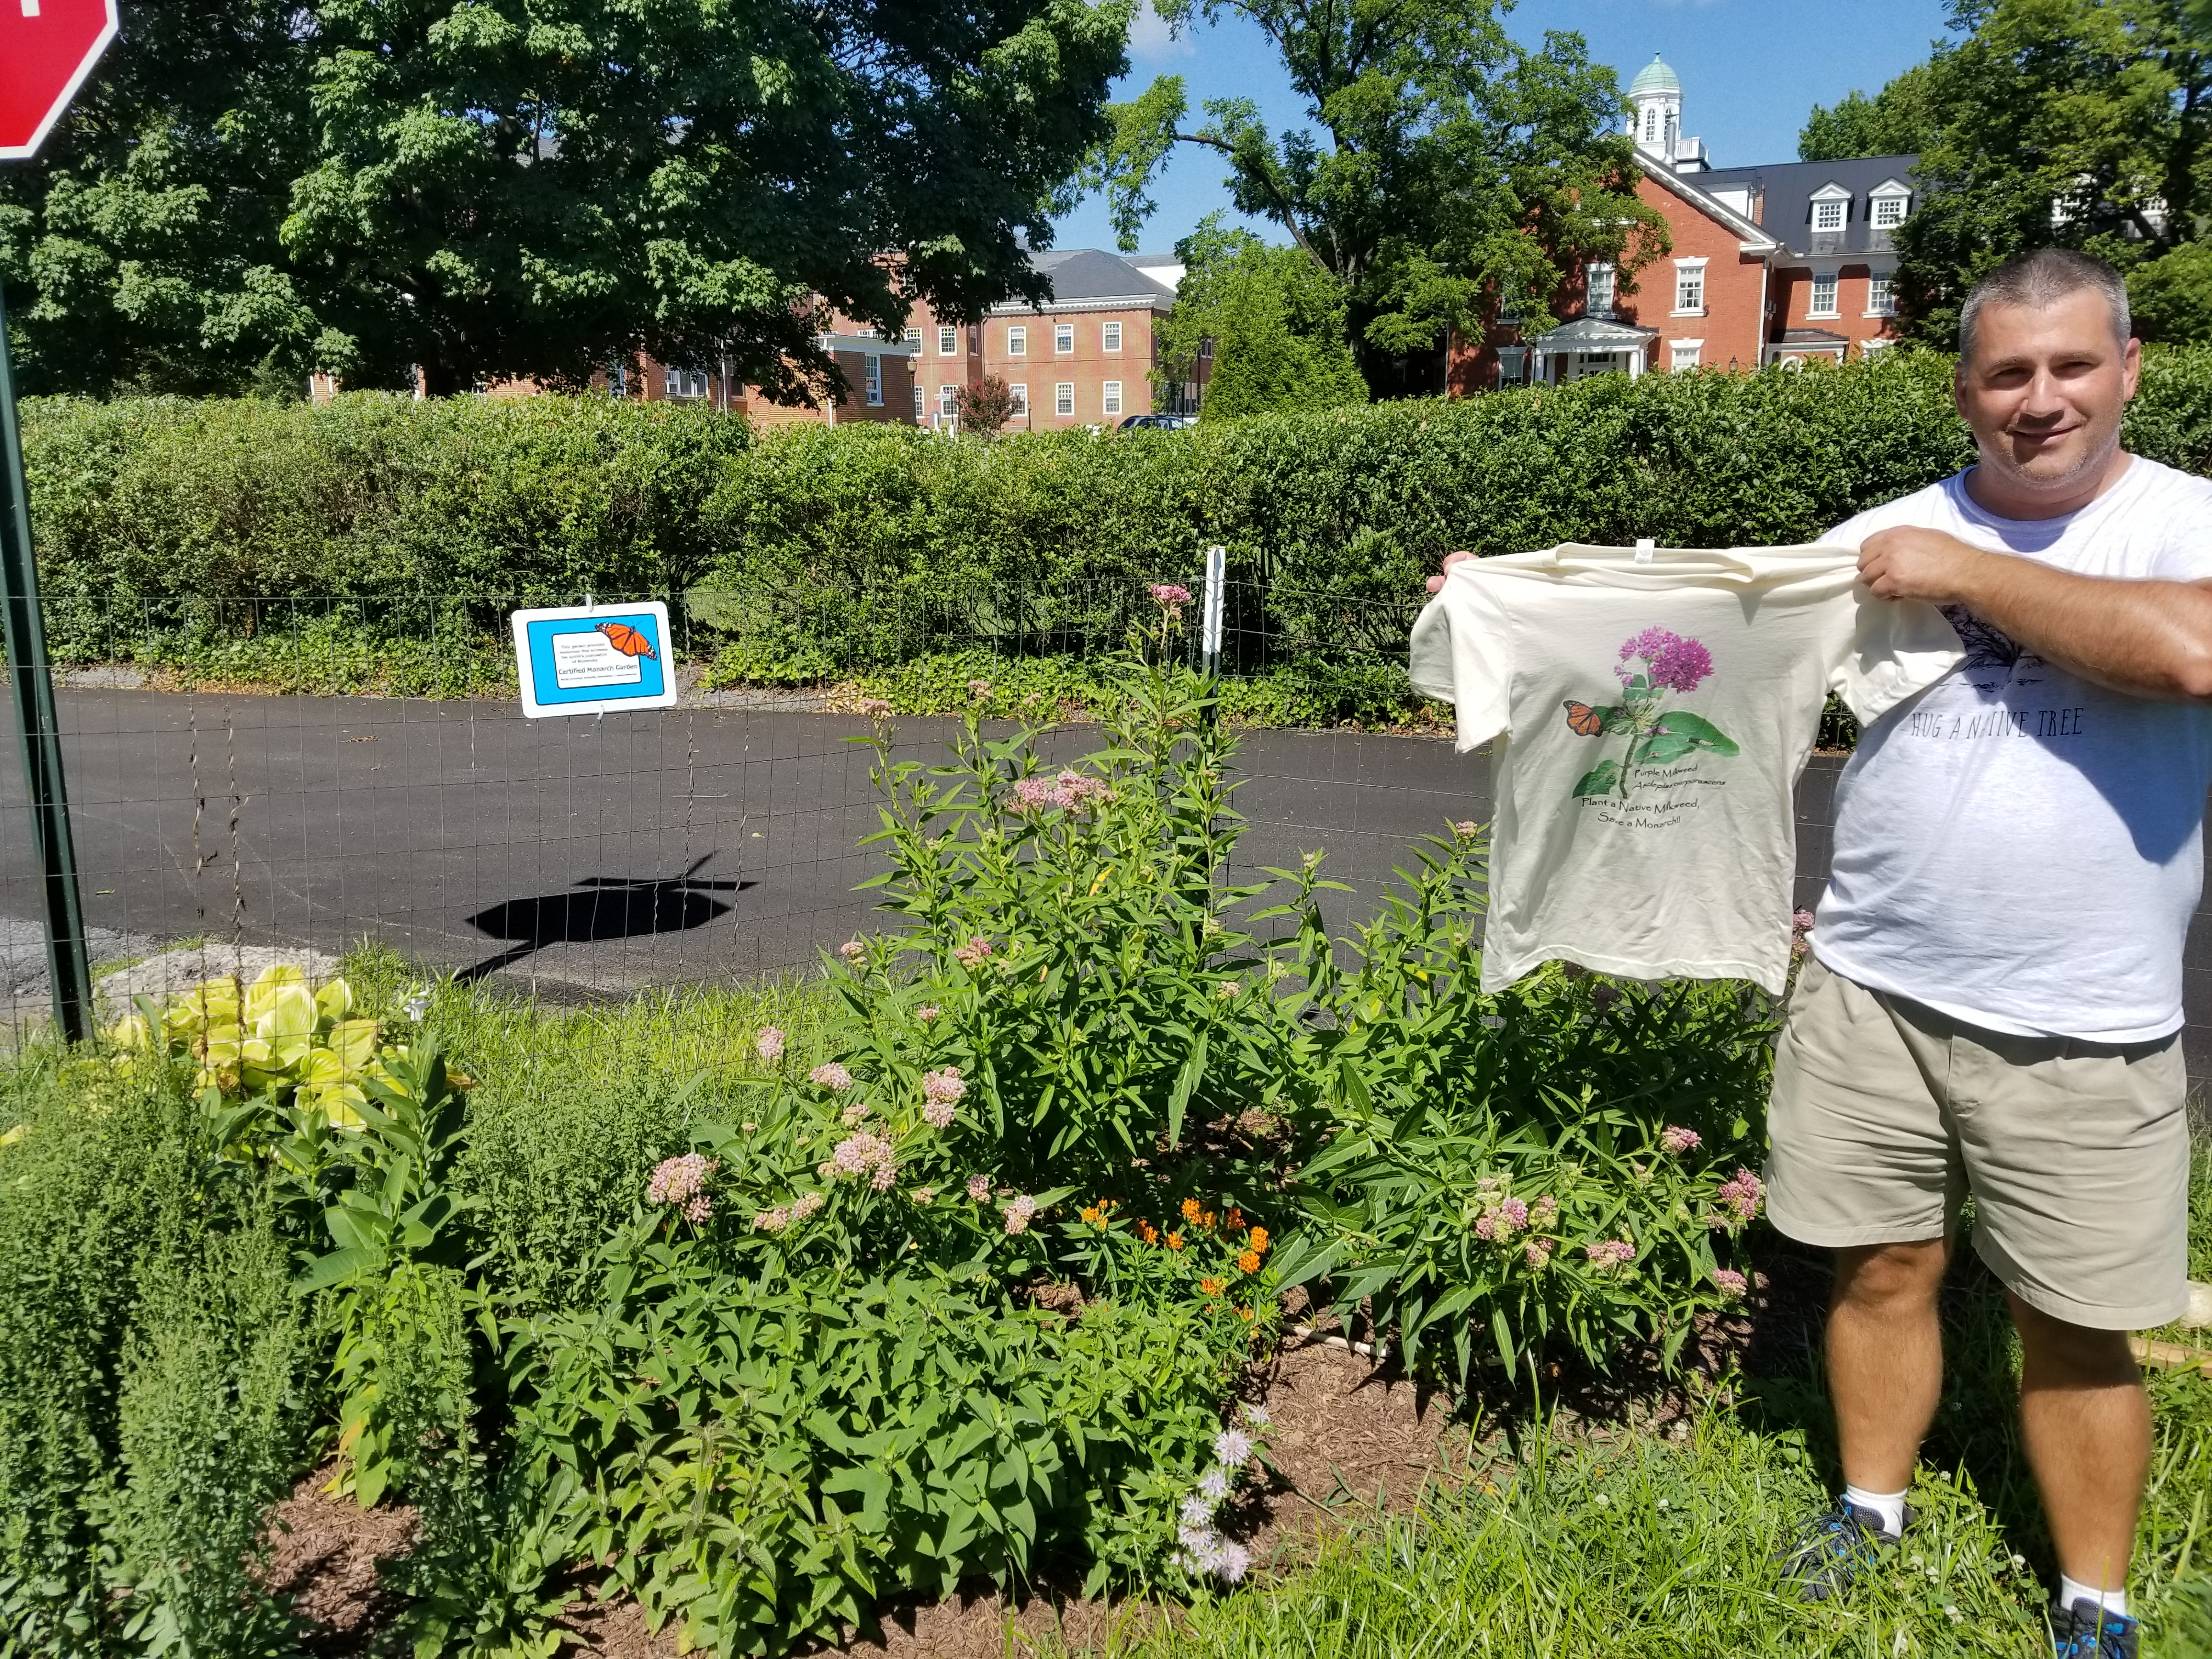 John Maciolek expands Monarch Garden